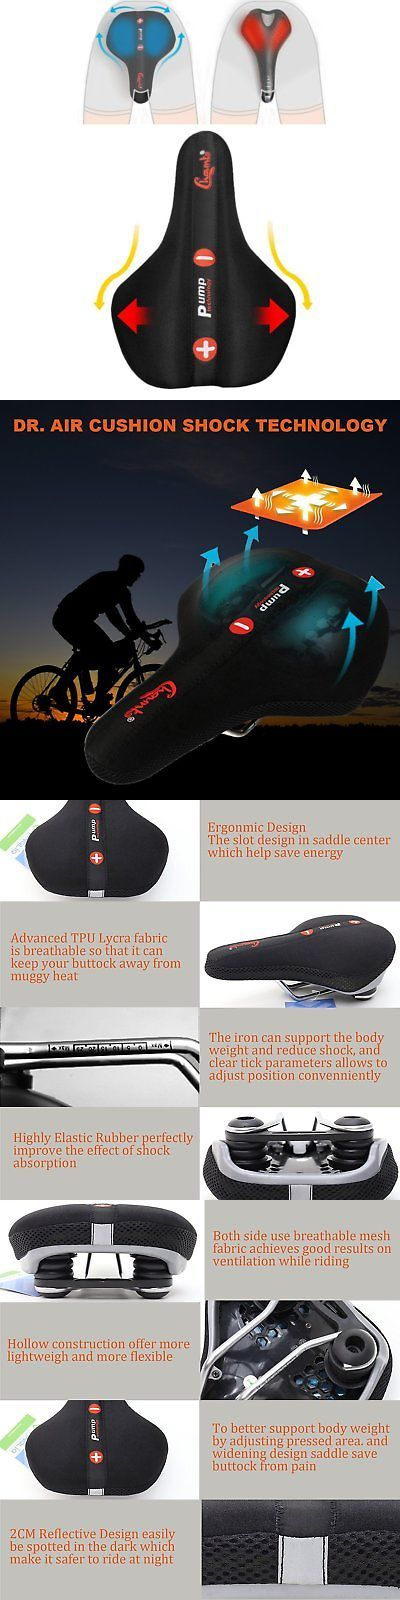 Saddle Covers Seat Covers 177838: Vinqliq Air Cushion Bike Bicycle Saddle Seat Innovative Design Extra Wide Gel -> BUY IT NOW ONLY: $40.13 on eBay!